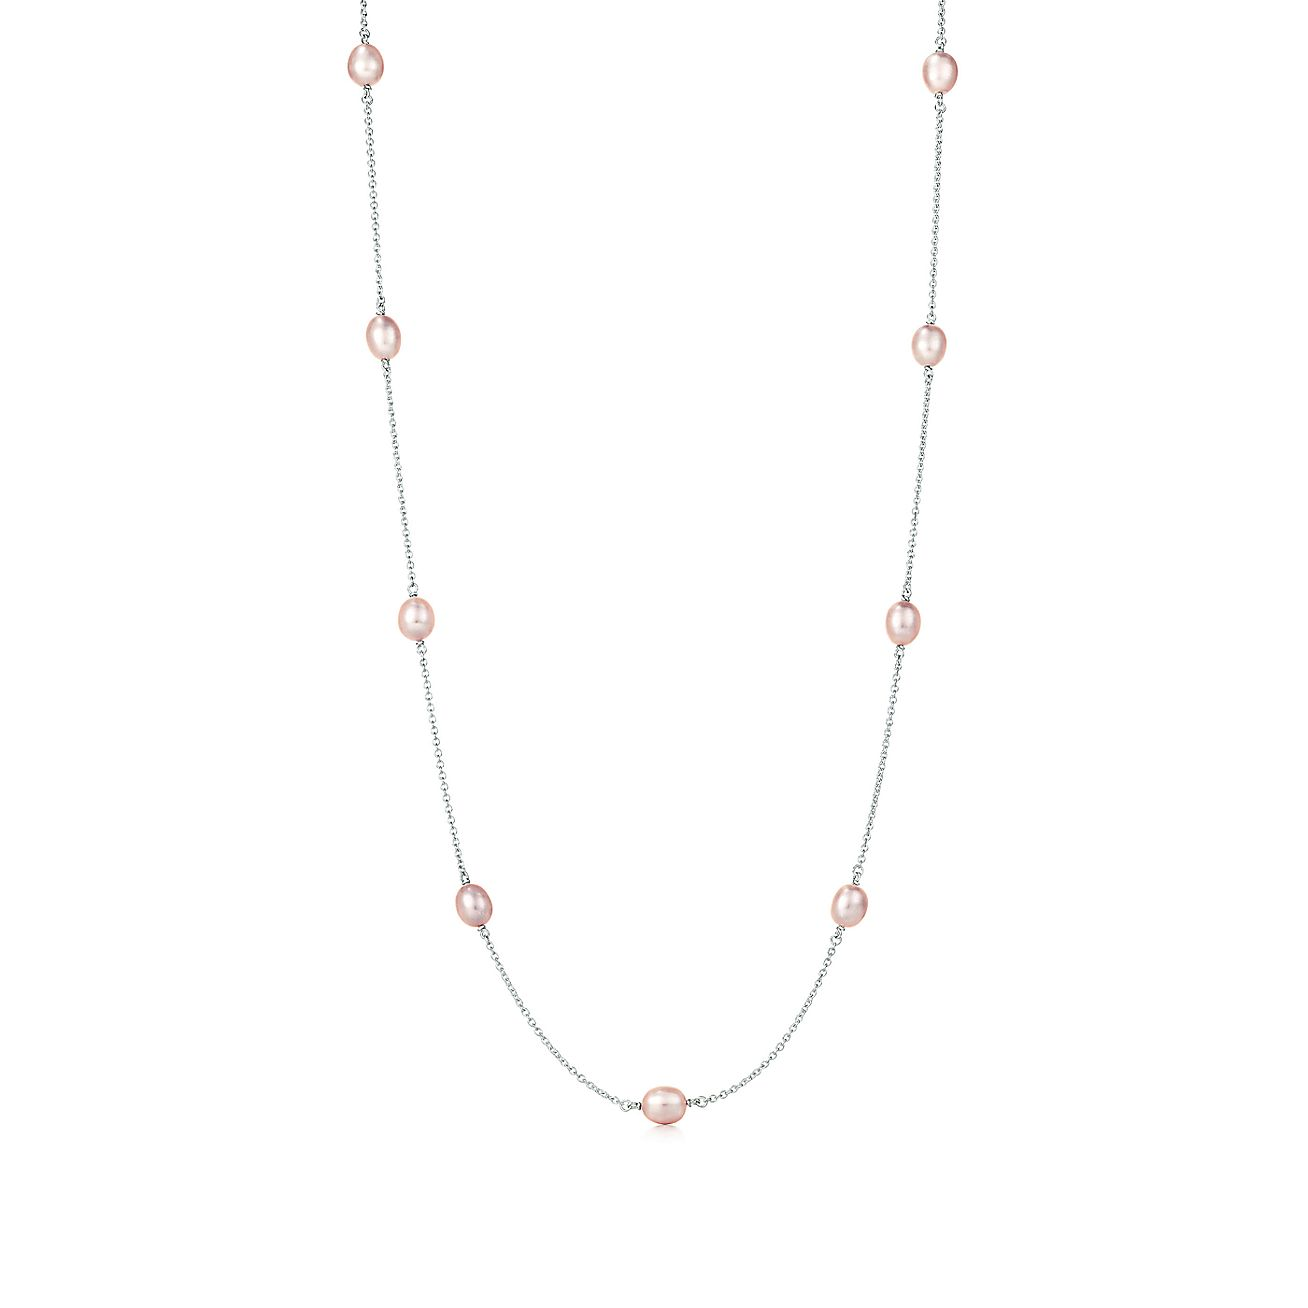 Elsa Peretti 174 Pearls By The Yard Necklace In Sterling